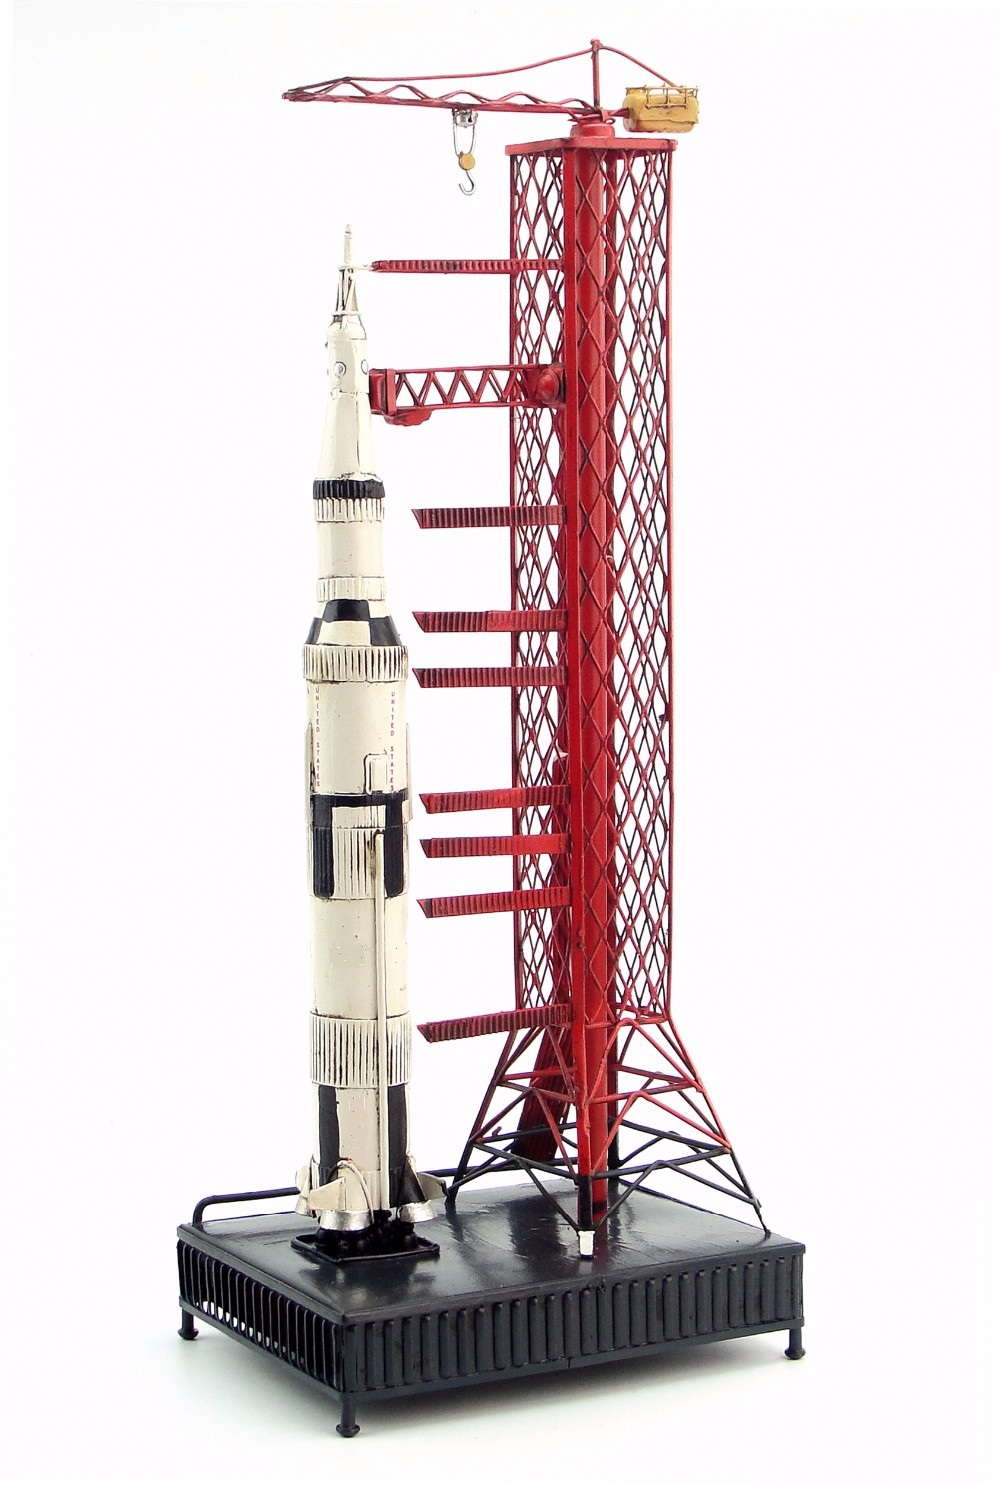 Make Old Craft Models by Hand Model Appollo Saturn five rocket retro classic forging metal crafts model ROCKET